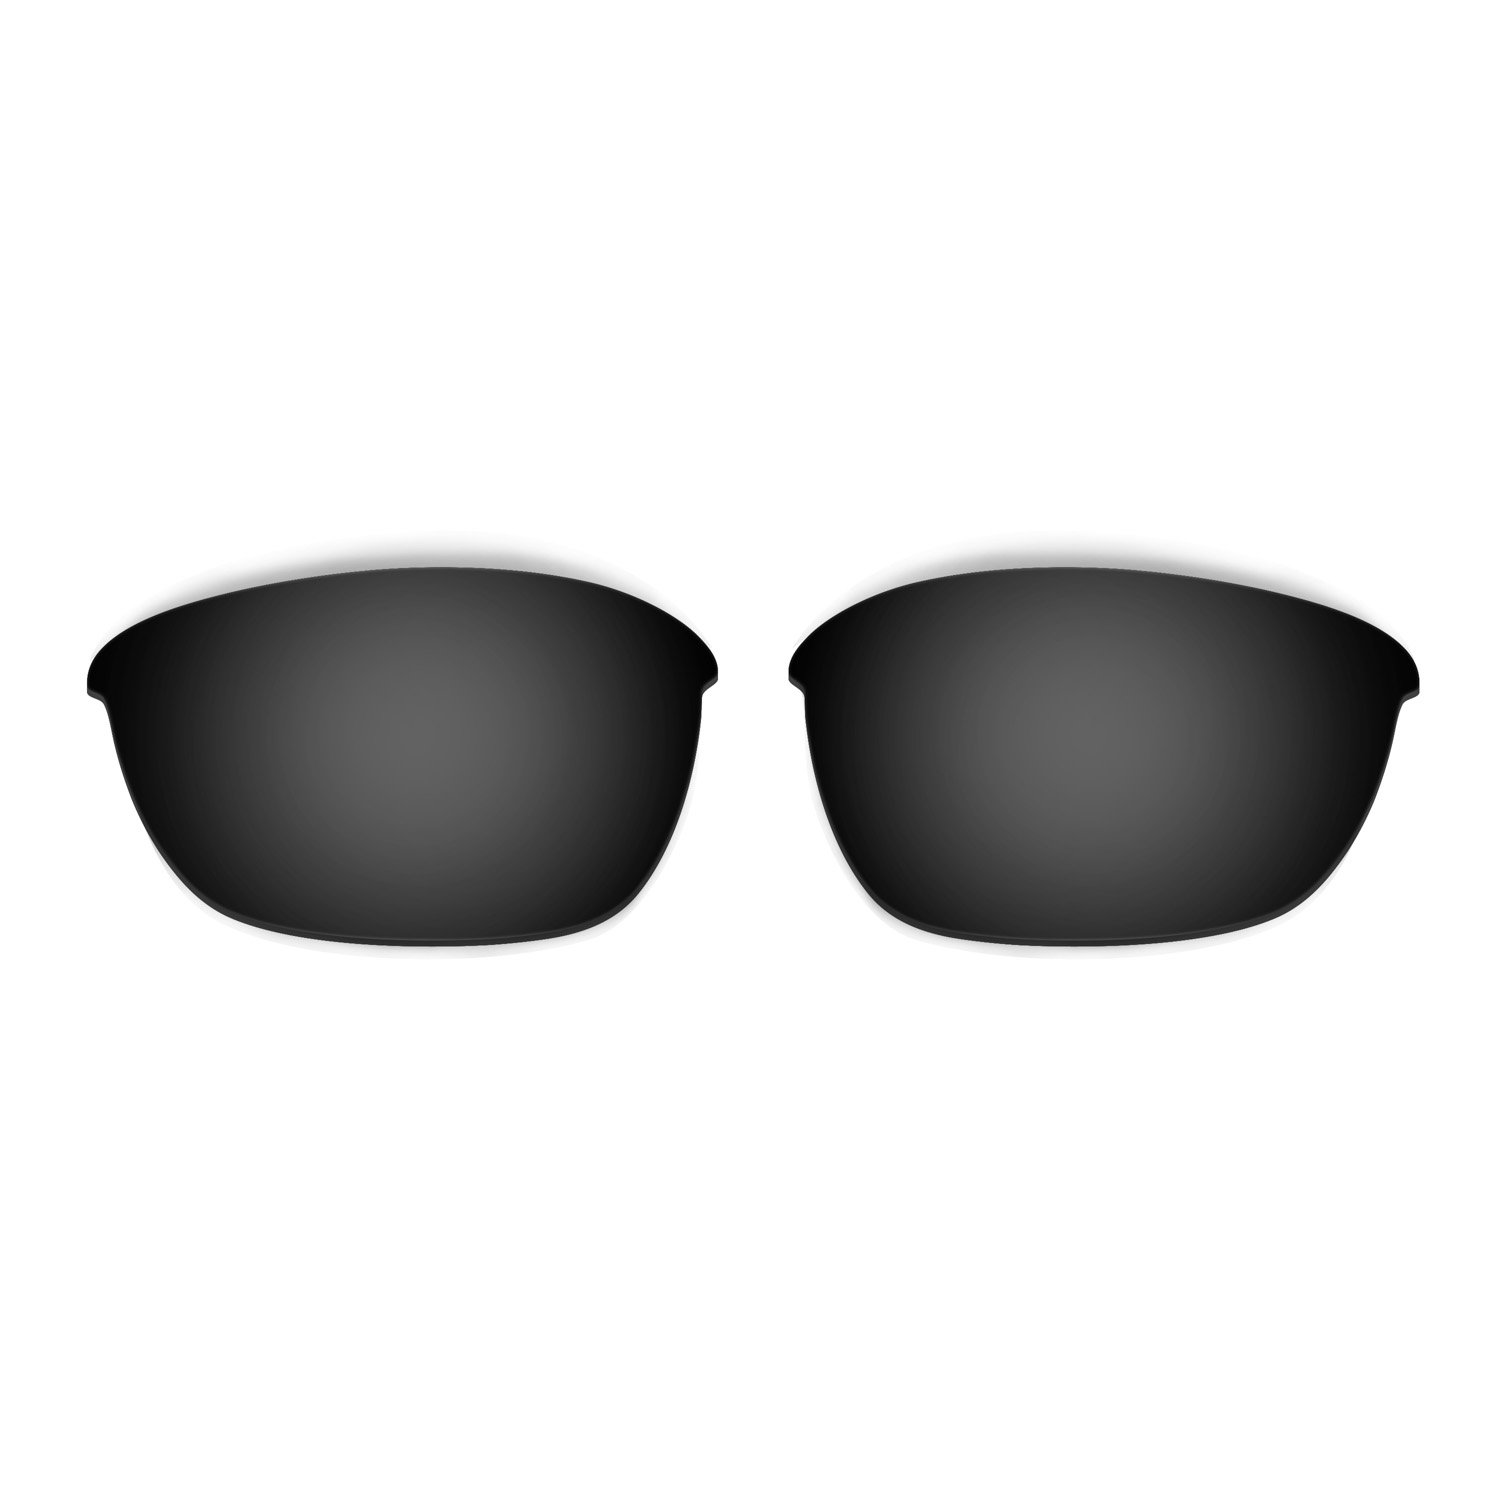 HKUCO Plus Mens Replacement Lenses For Oakley Half Jacket 2.0 XL - 2 pair Combo Pack pWMLJJ25